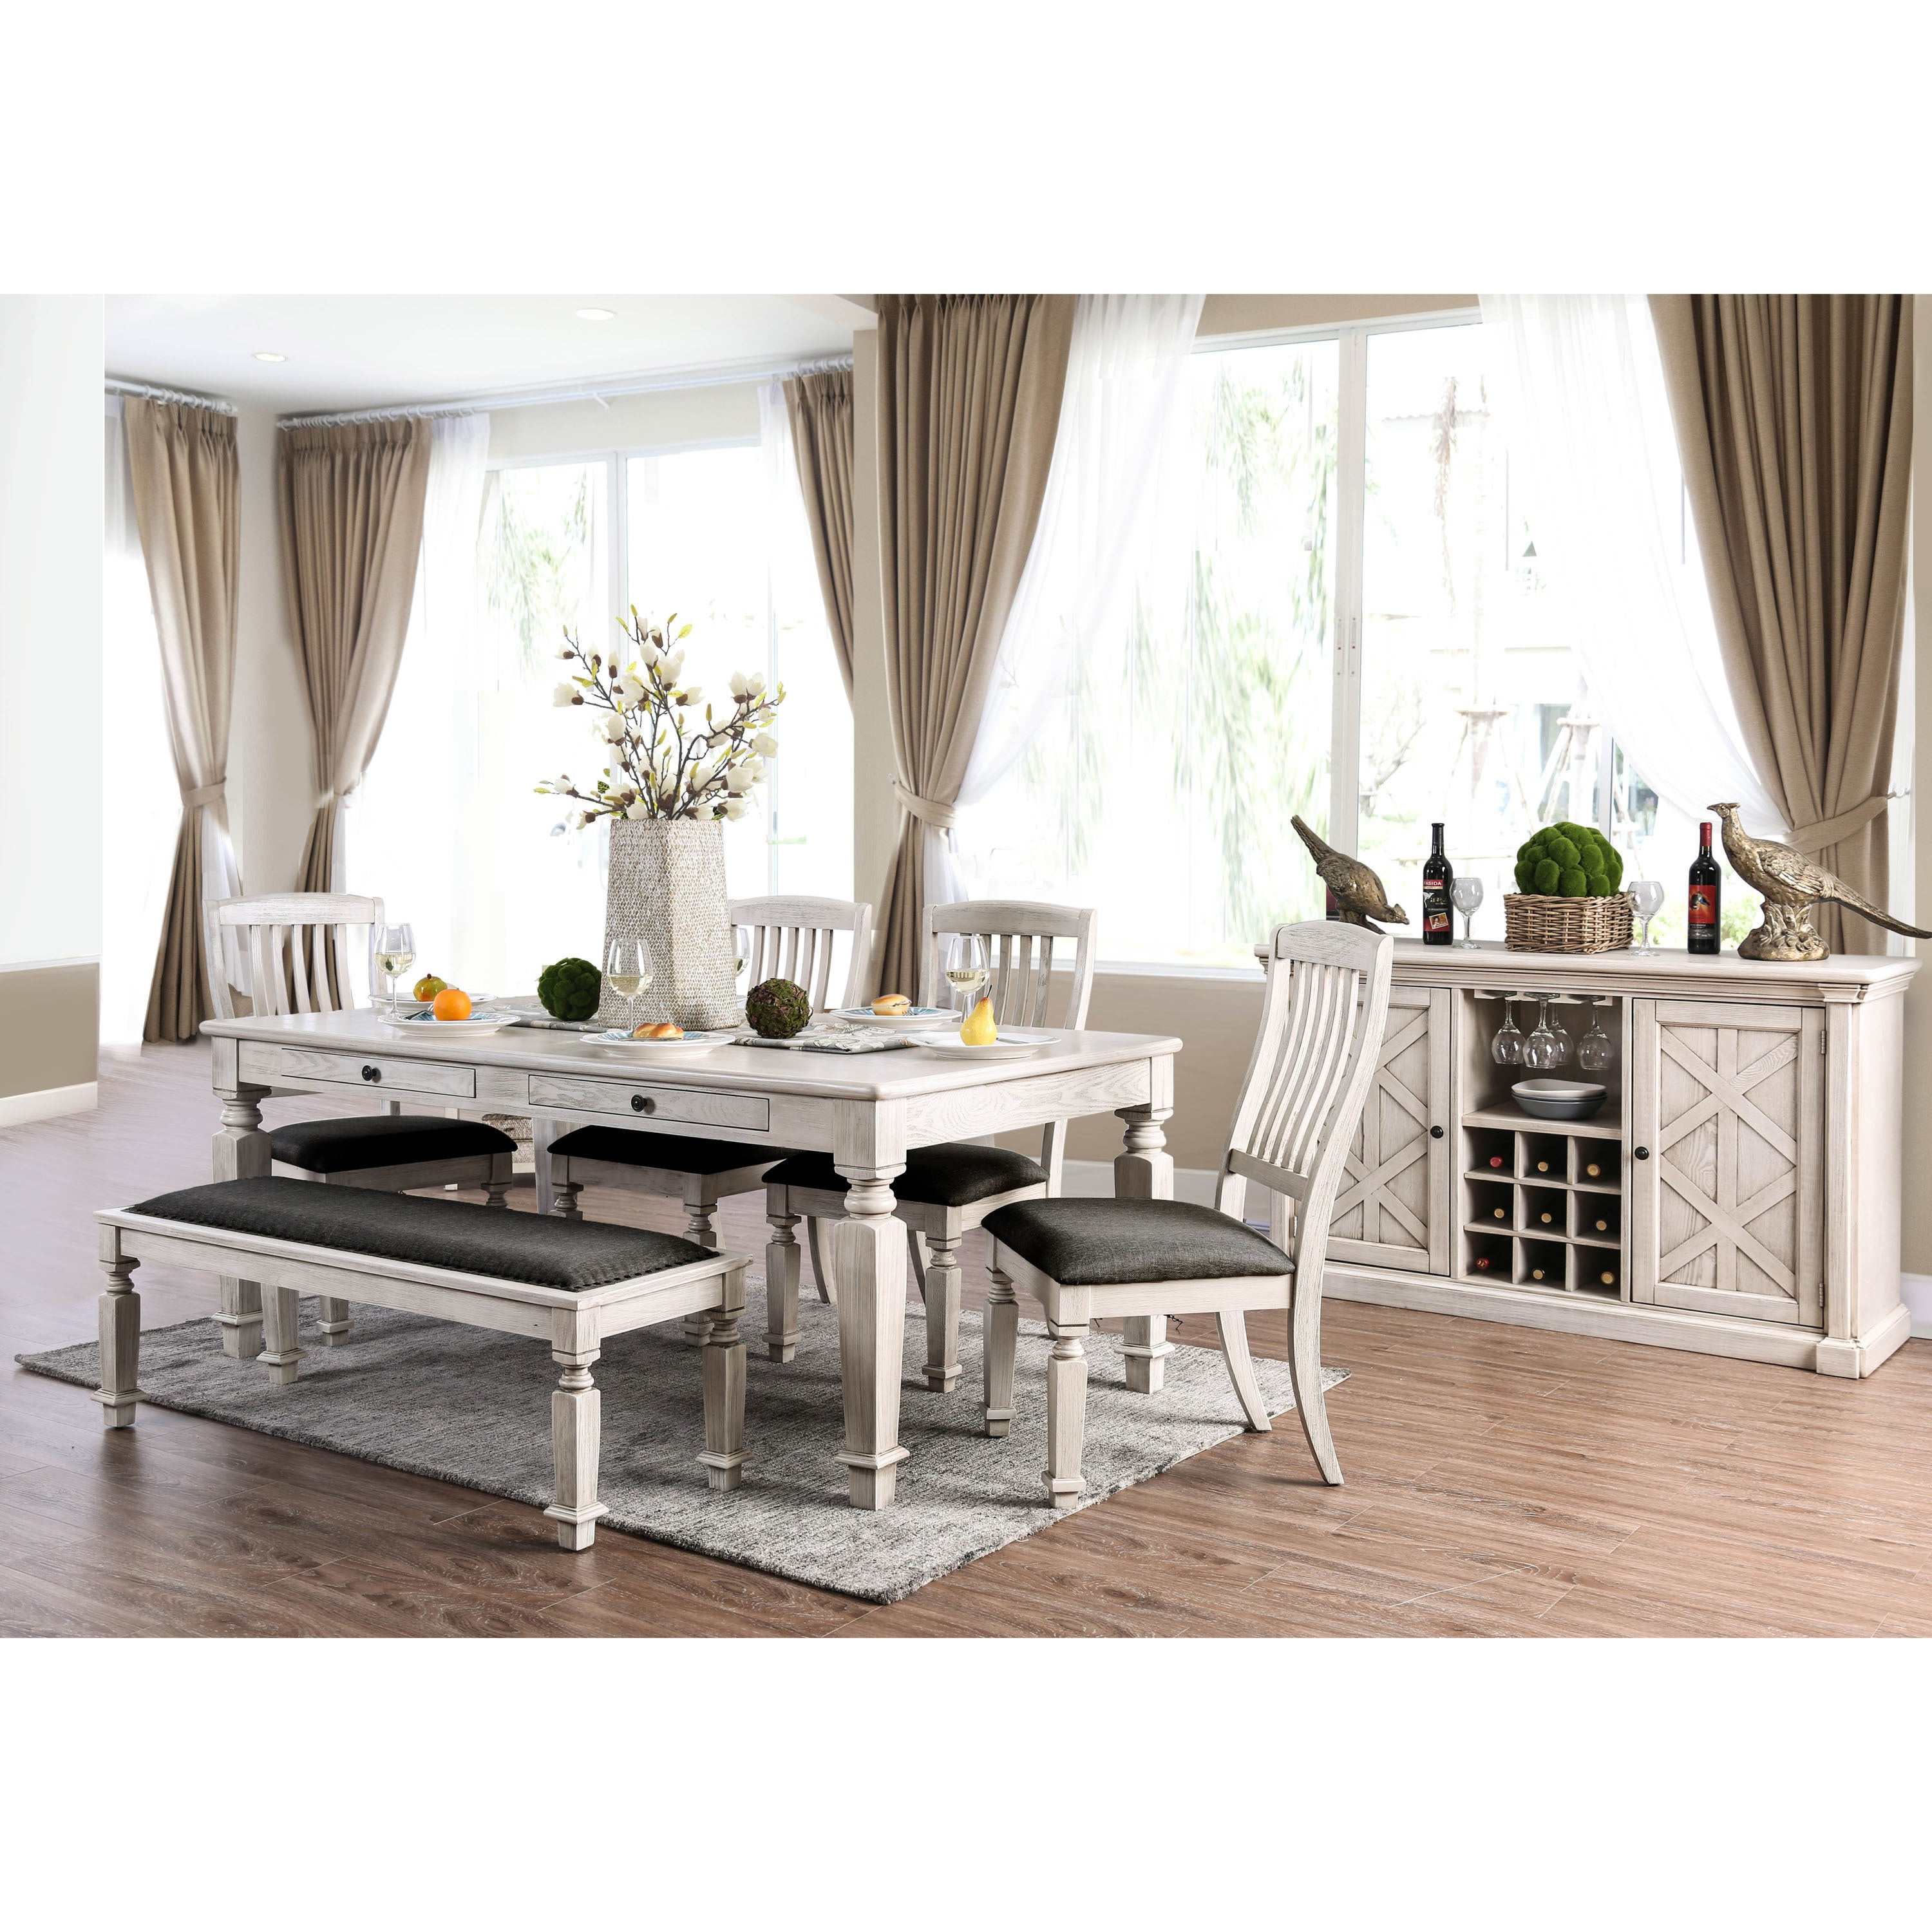 Furniture Of America Tyler Rustic Farmhouse Dining Table Antique White On Free Shipping Today 21500973